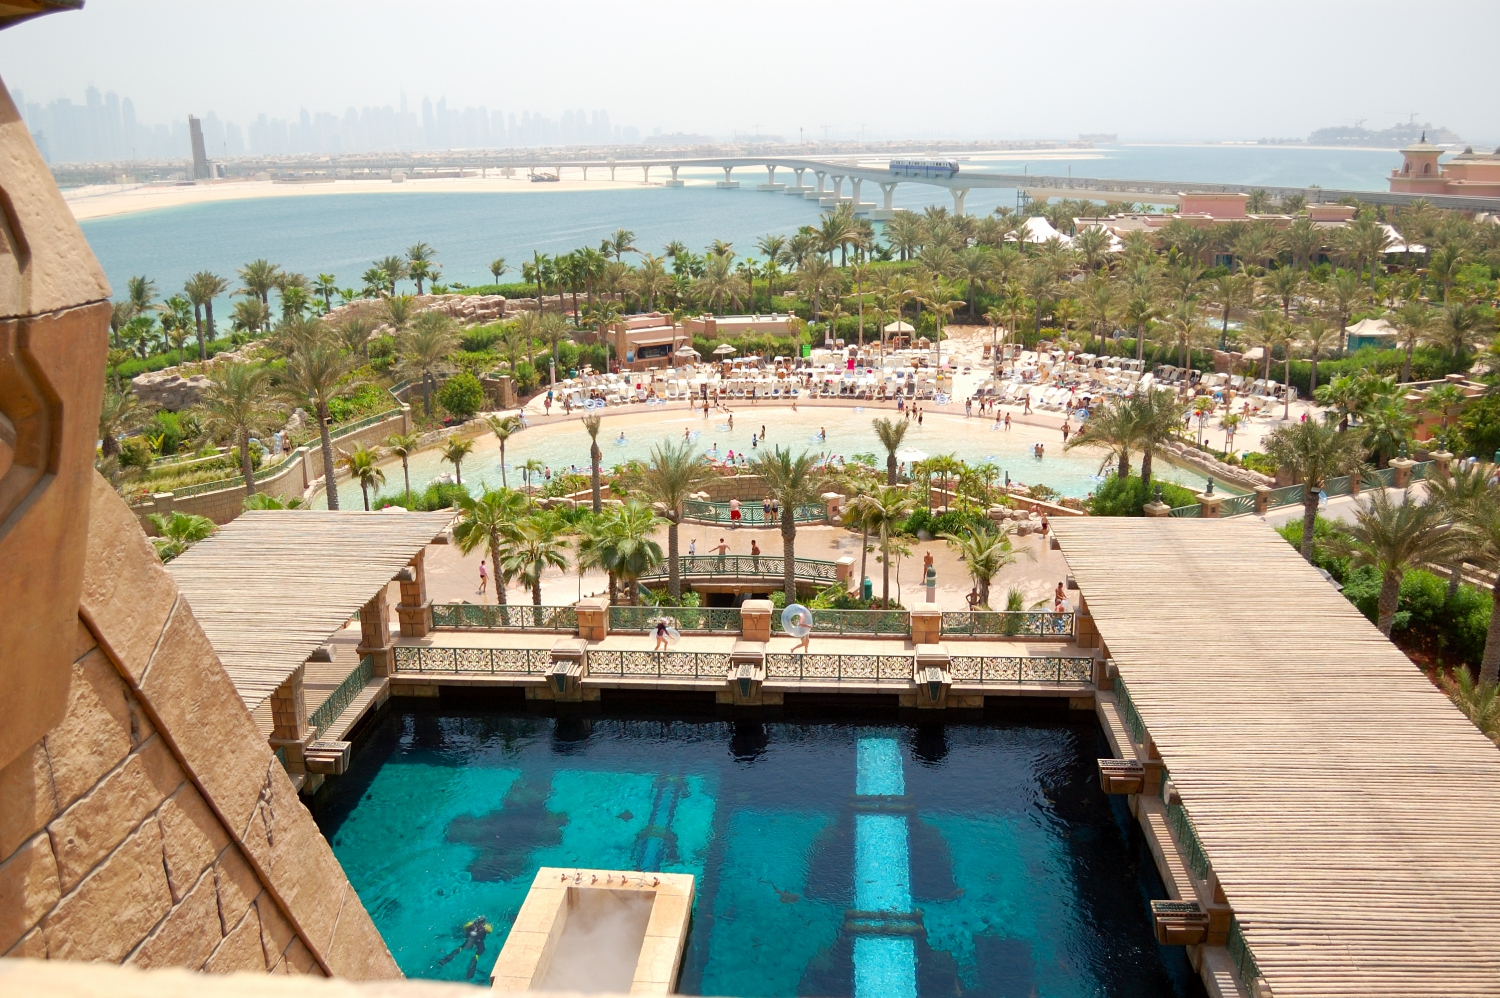 What to Do With Your Kids in Dubai